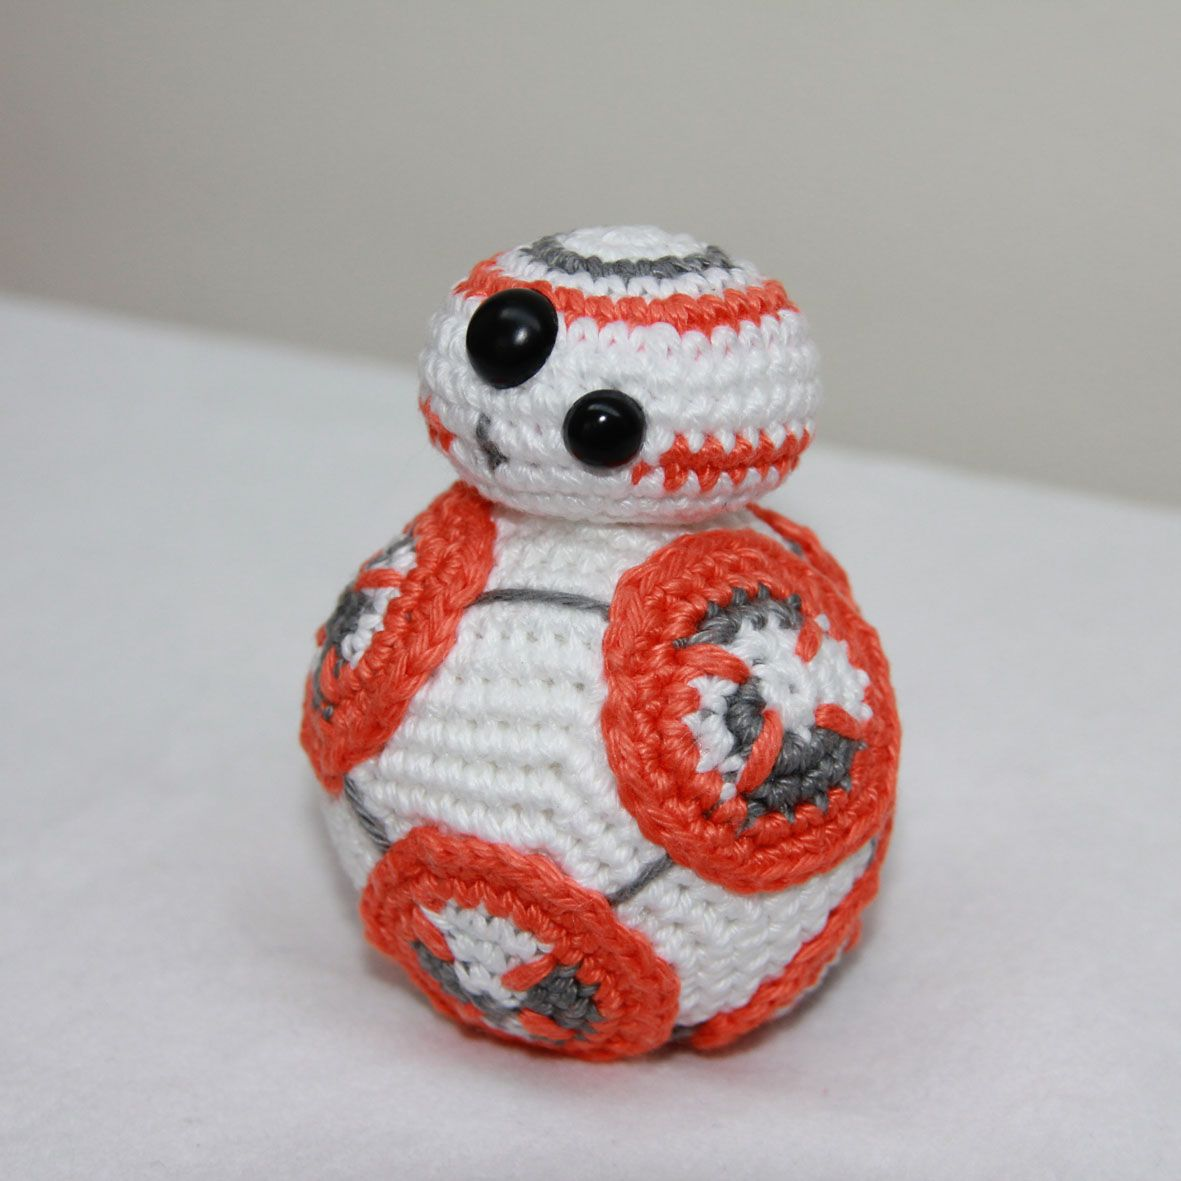 Star wars bb8 free crochet pattern gratis haakpatroon bb8 bb8 from star wars free crochet pattern in english and dutch by ilona leenders at bankloansurffo Images